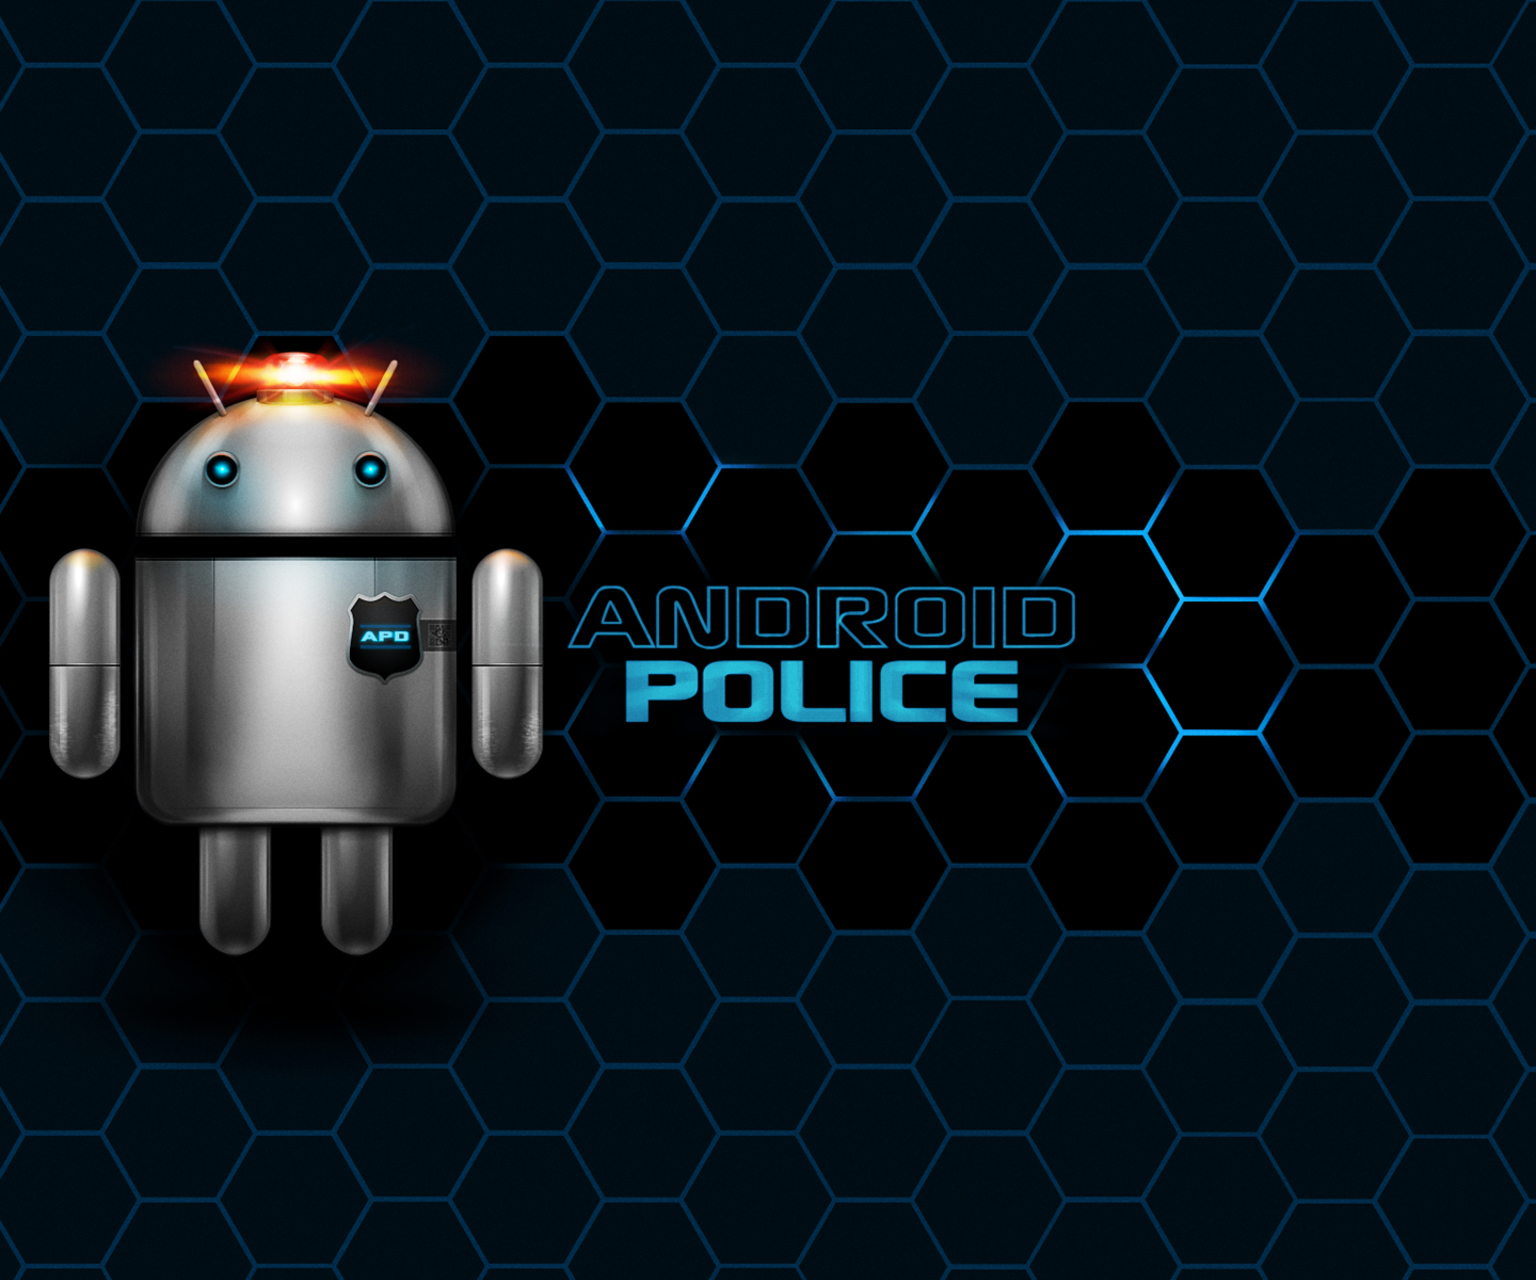 android police cool hd wallpaper